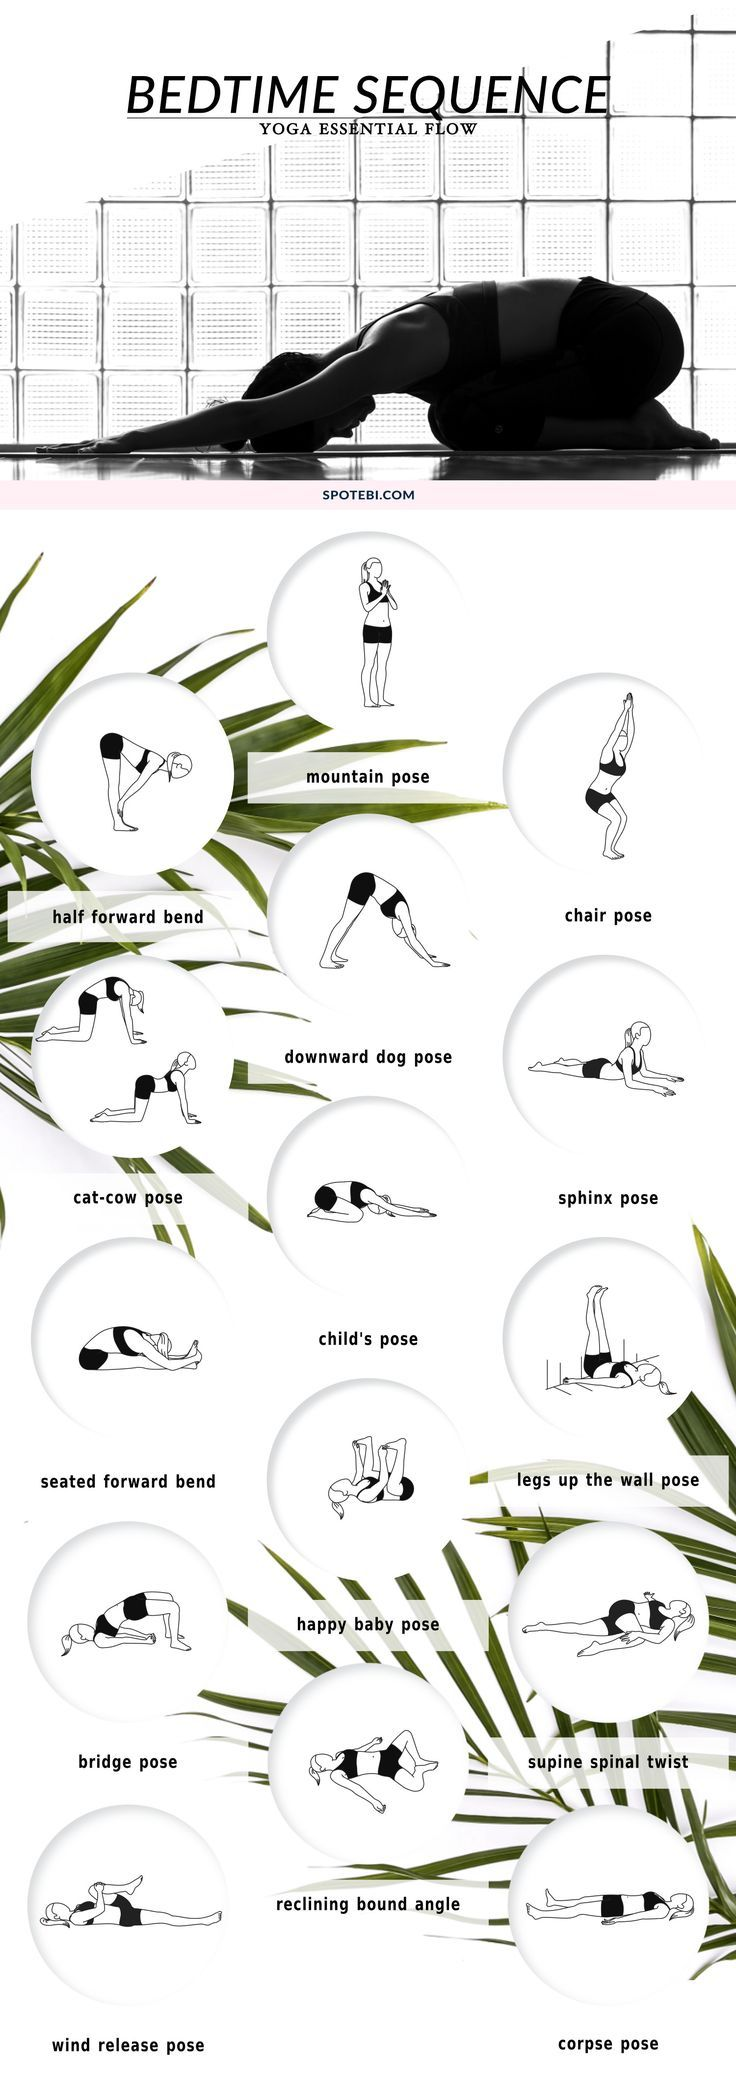 Beat insomnia and boost relaxation with our bedtime essential flow. A 12 minute yoga sequence perfect to soothe your mind and body before bed.